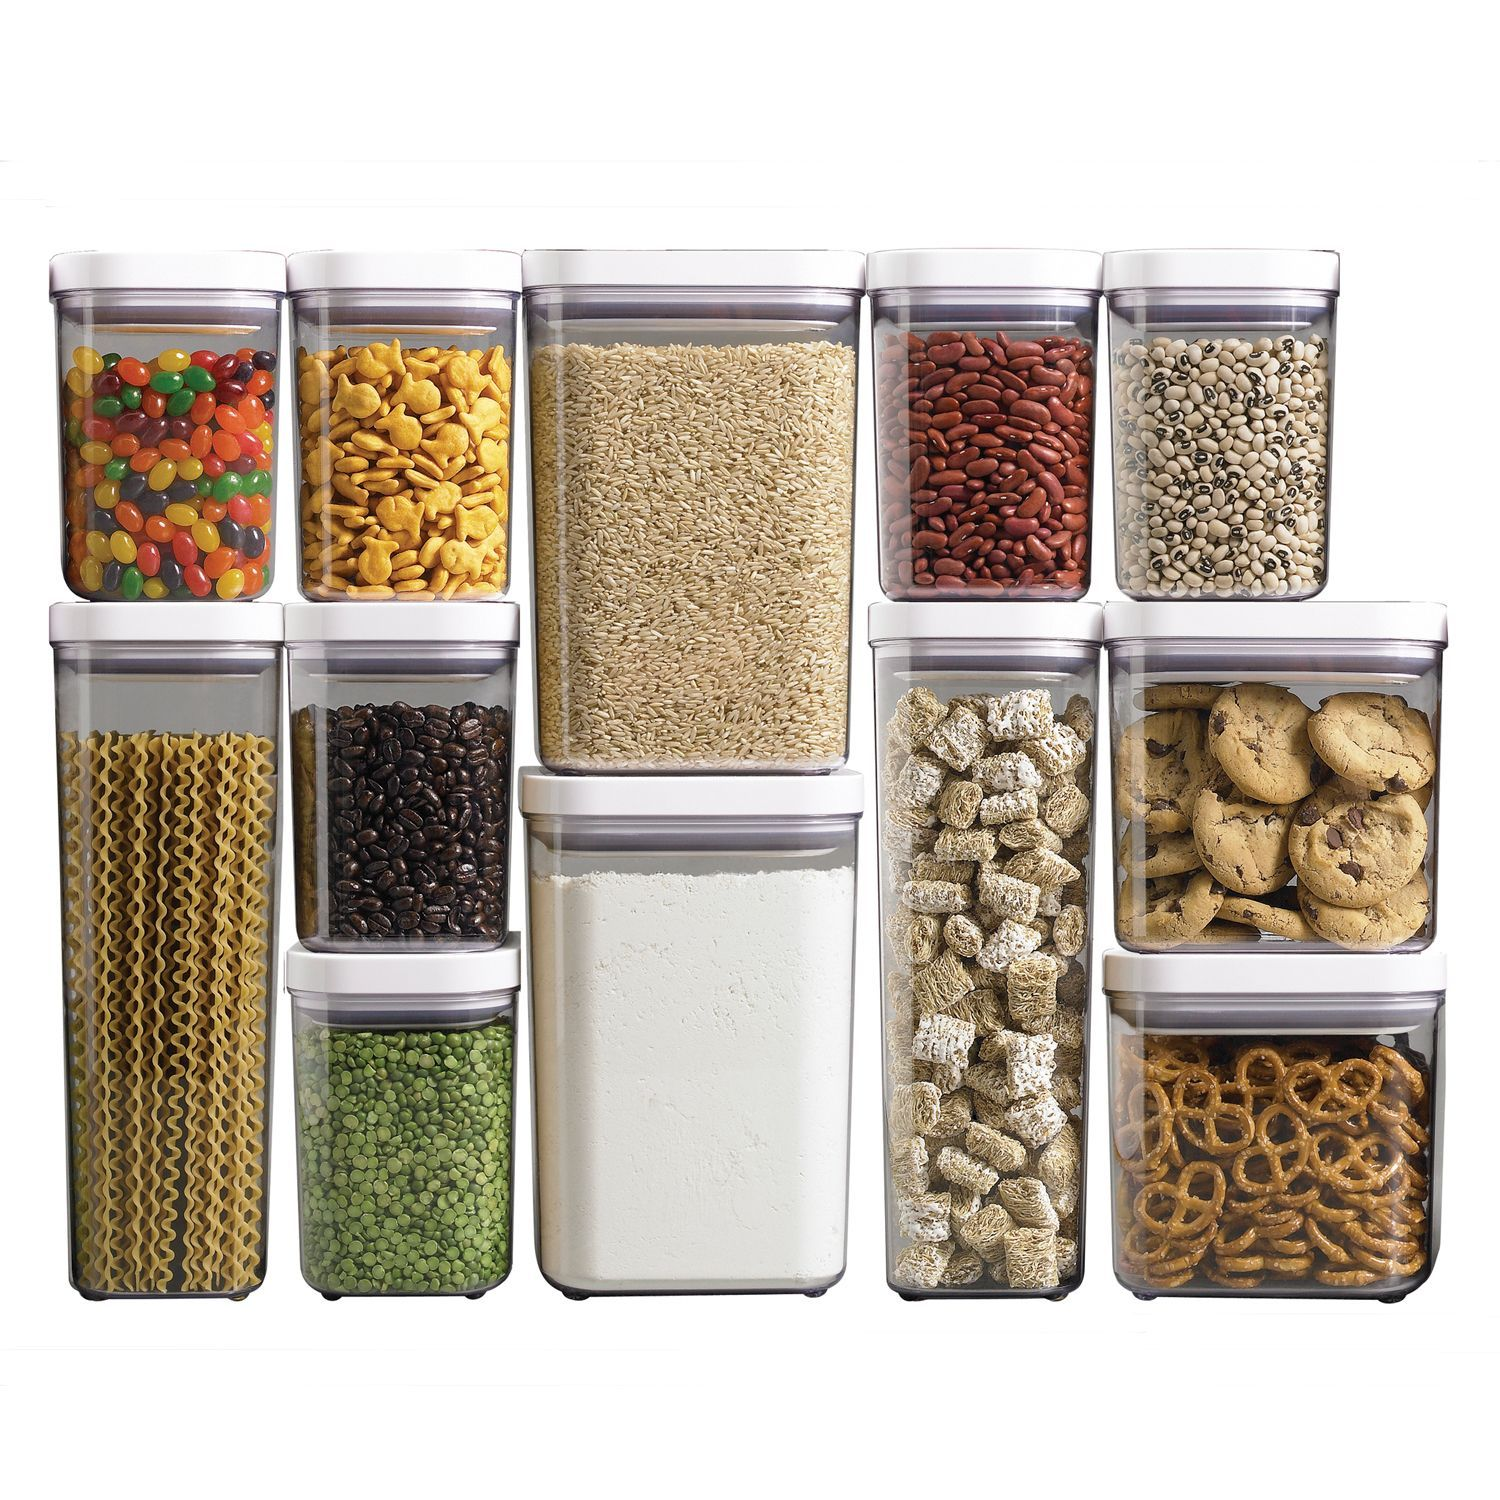 OXO Good Grips POP Container Set 12 pc Sams Club Looks